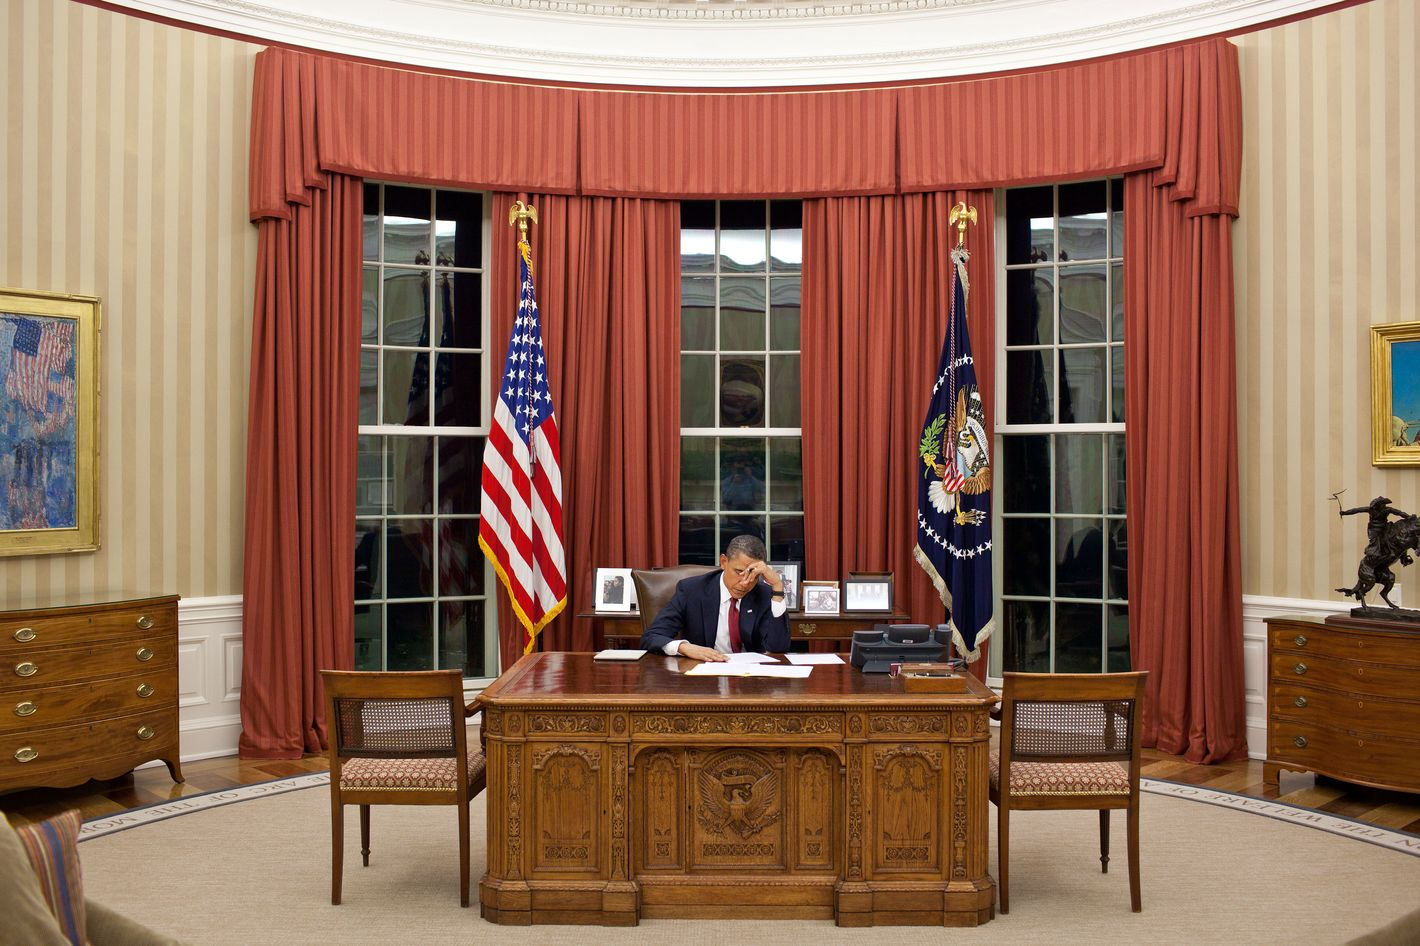 President Barack Obama edits his remarks in the Oval Office prior to making a televised statement detailing the mission against Osama bin Laden